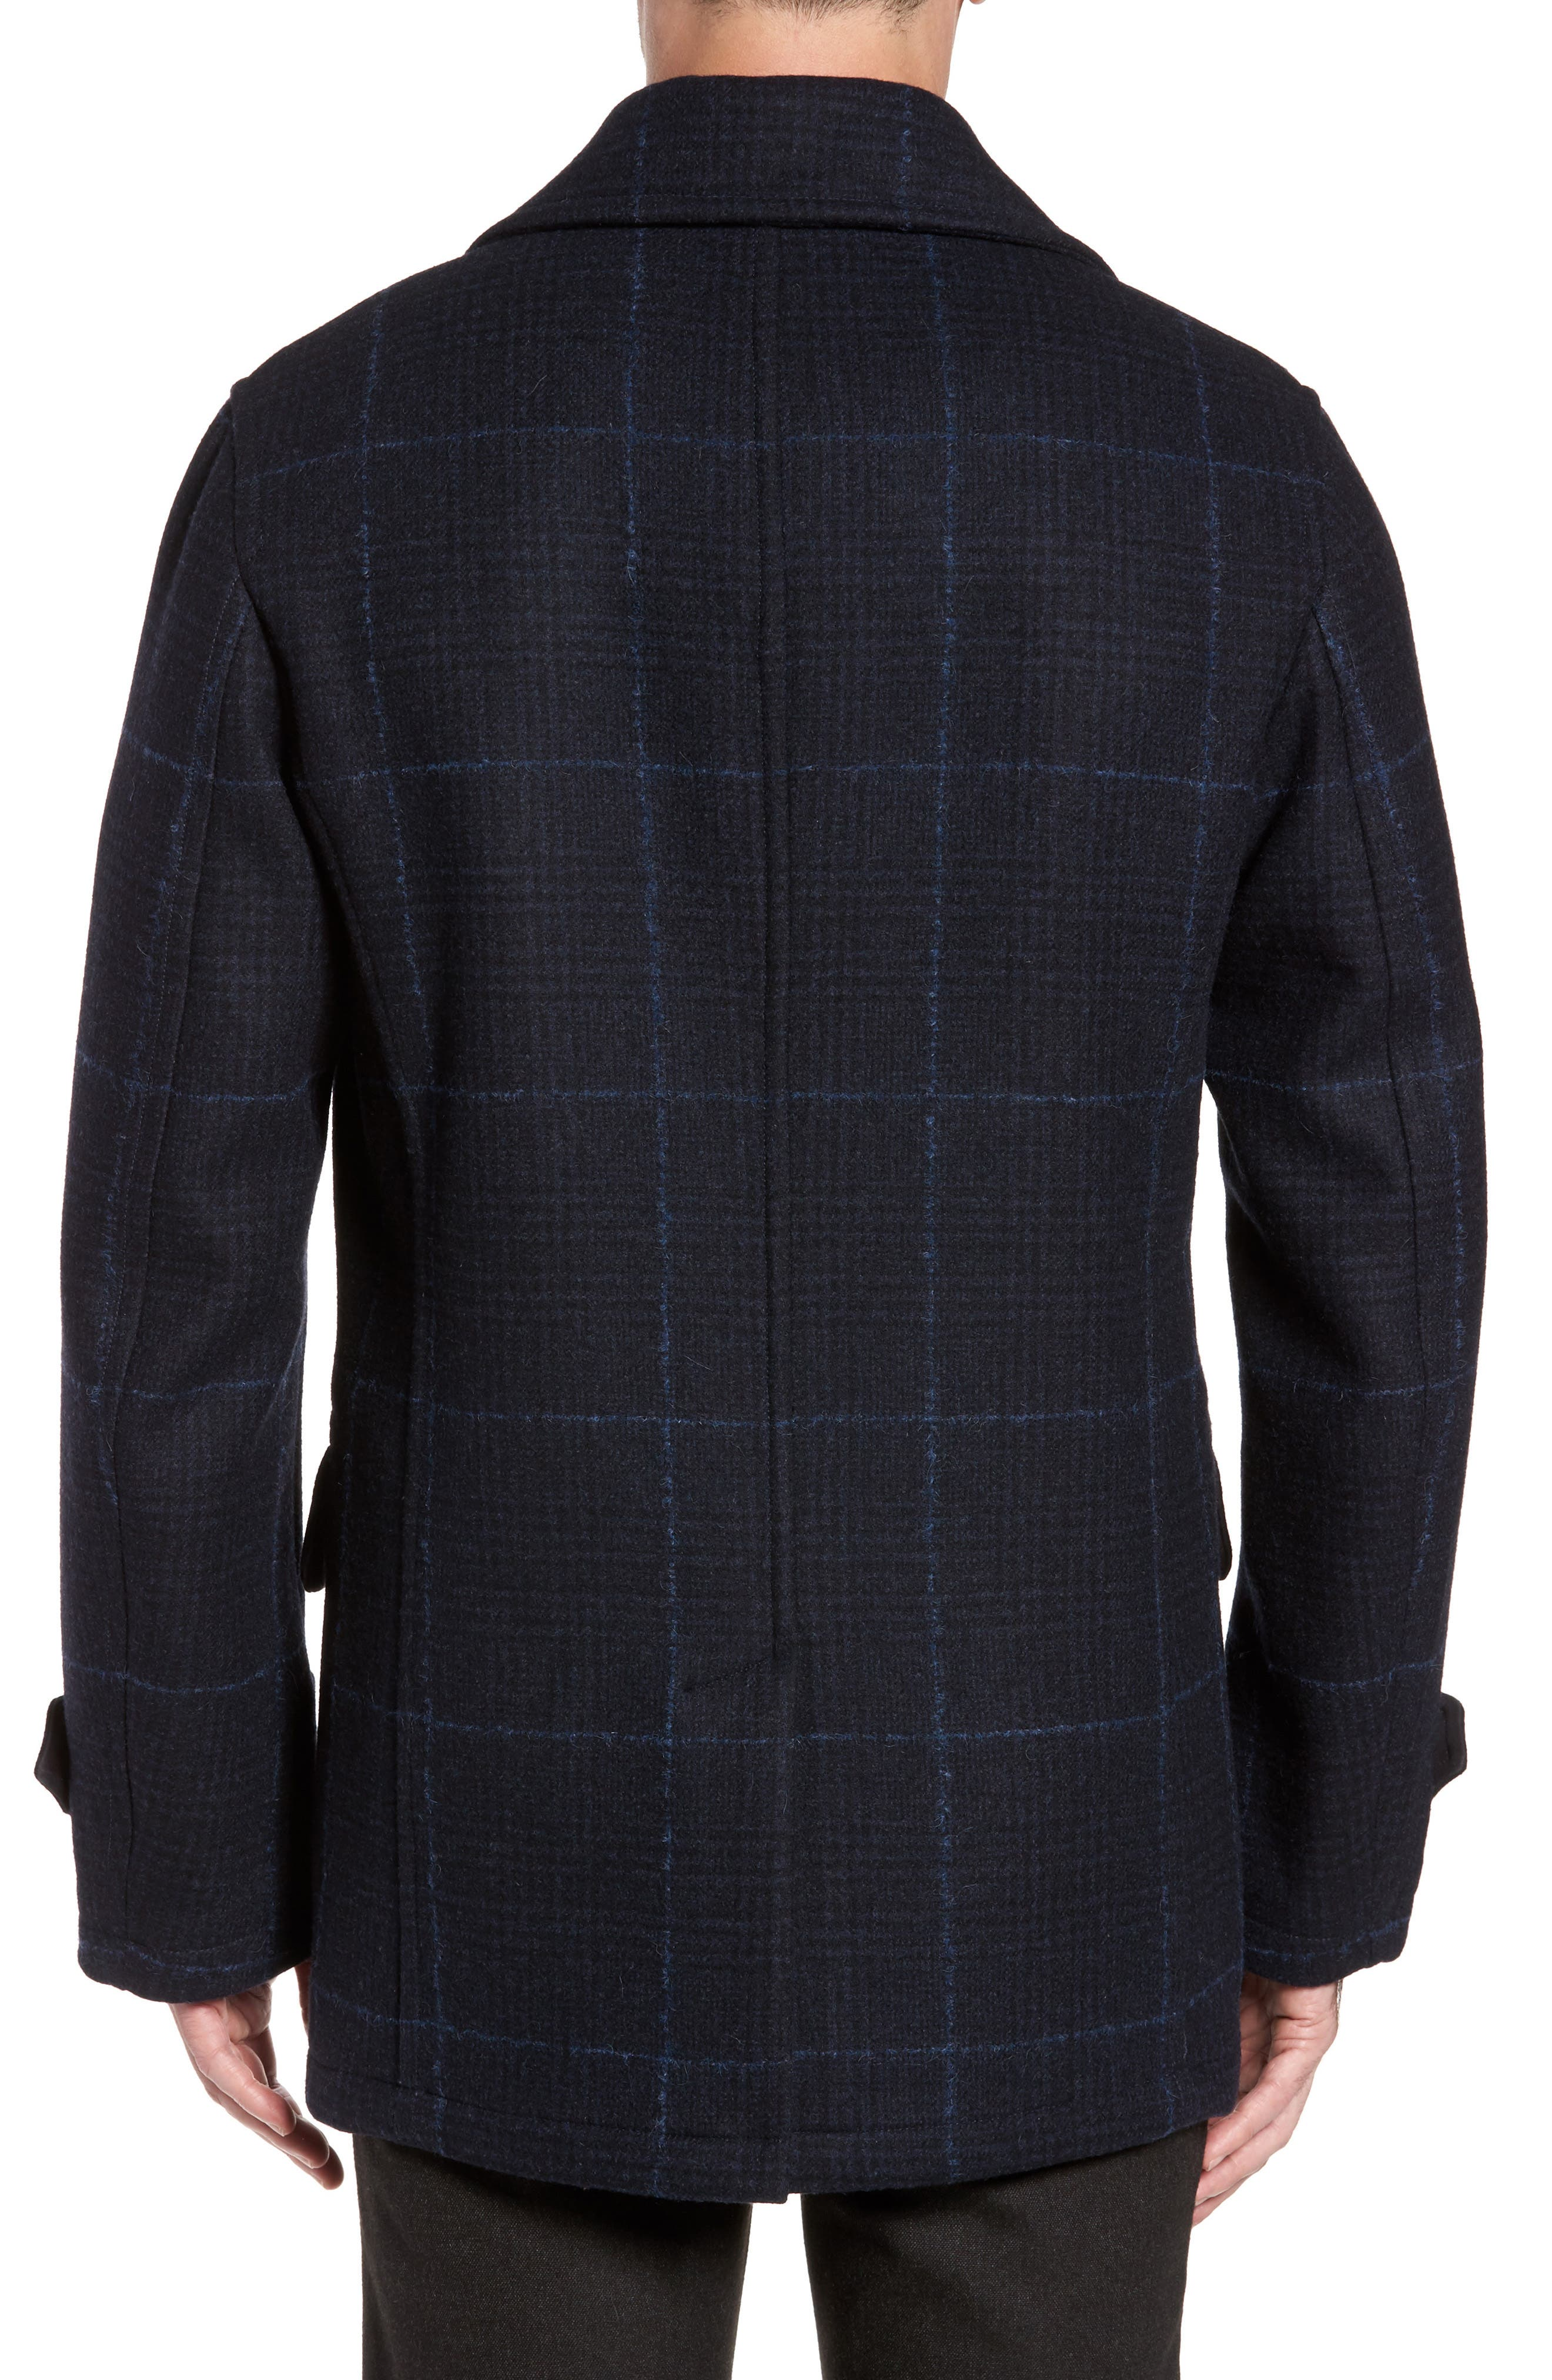 Wool Plaid Peacoat,                             Alternate thumbnail 2, color,                             Navy